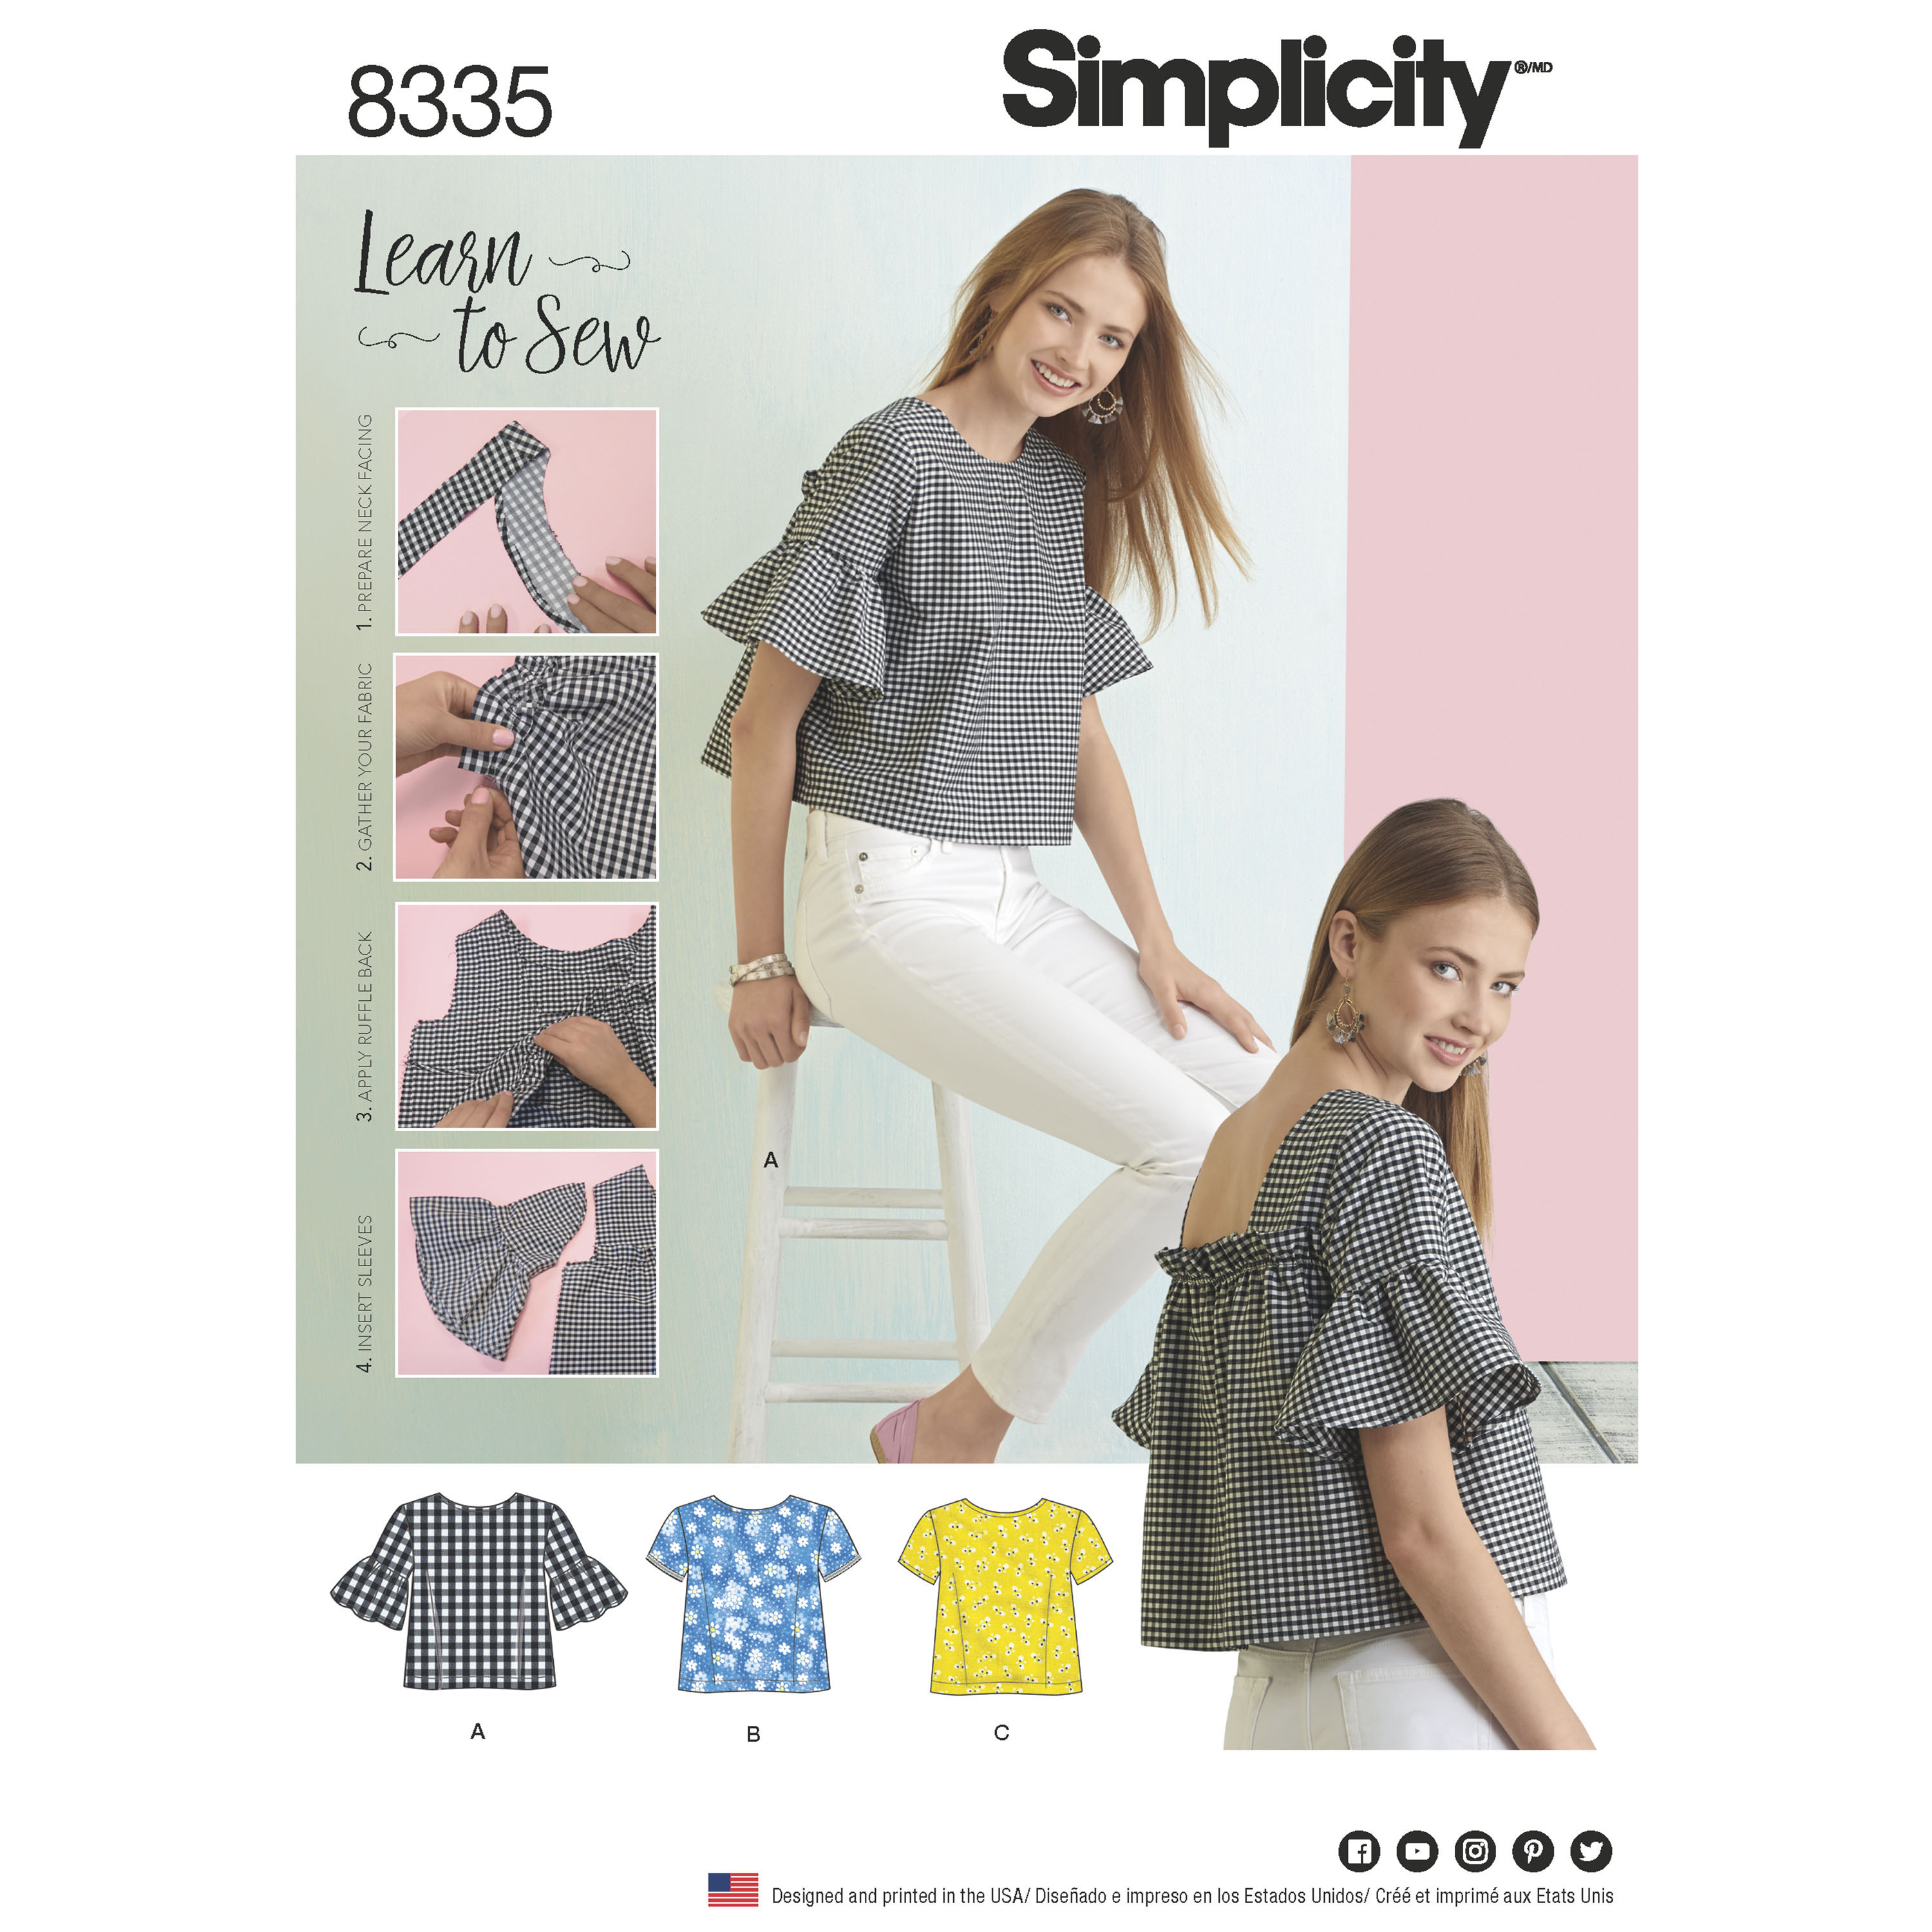 Simplicity 8335 Misses' Top with Back Interest